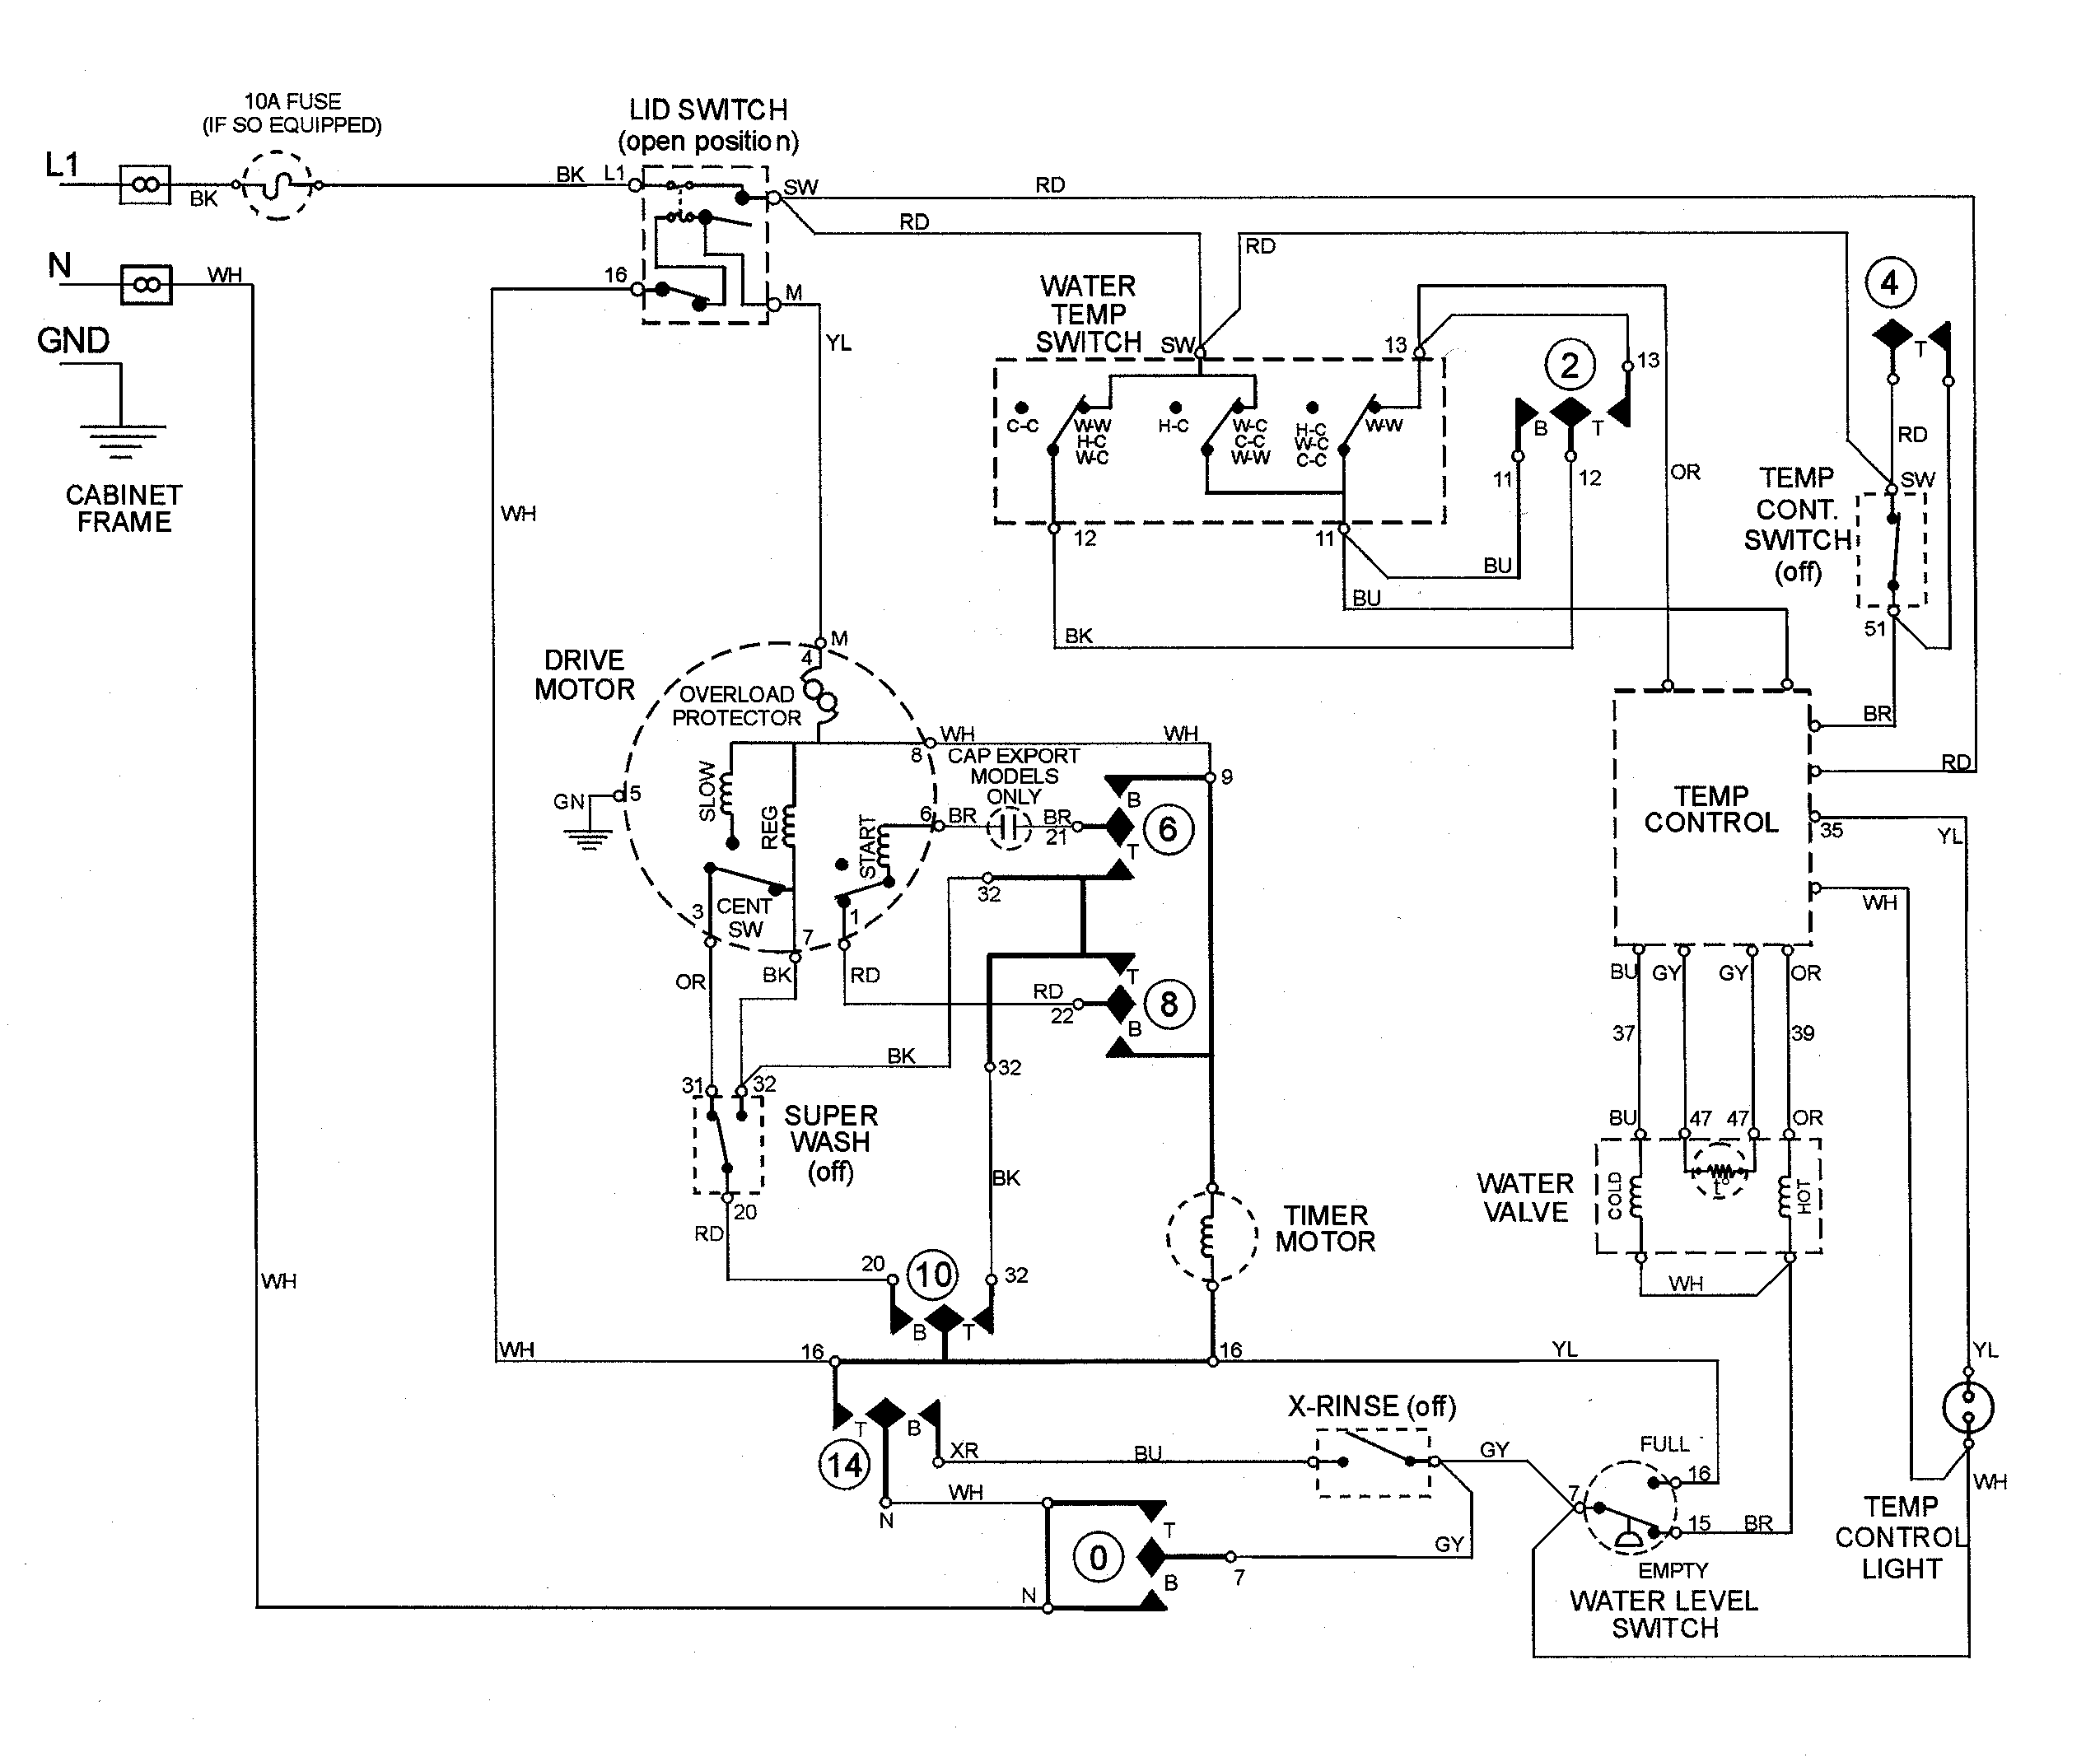 Washing Machine Motor Wiring Diagram Pdf Worksheet And Samsung Dryer Basic Schematics Diagrams U2022 Rh Parntesis Co